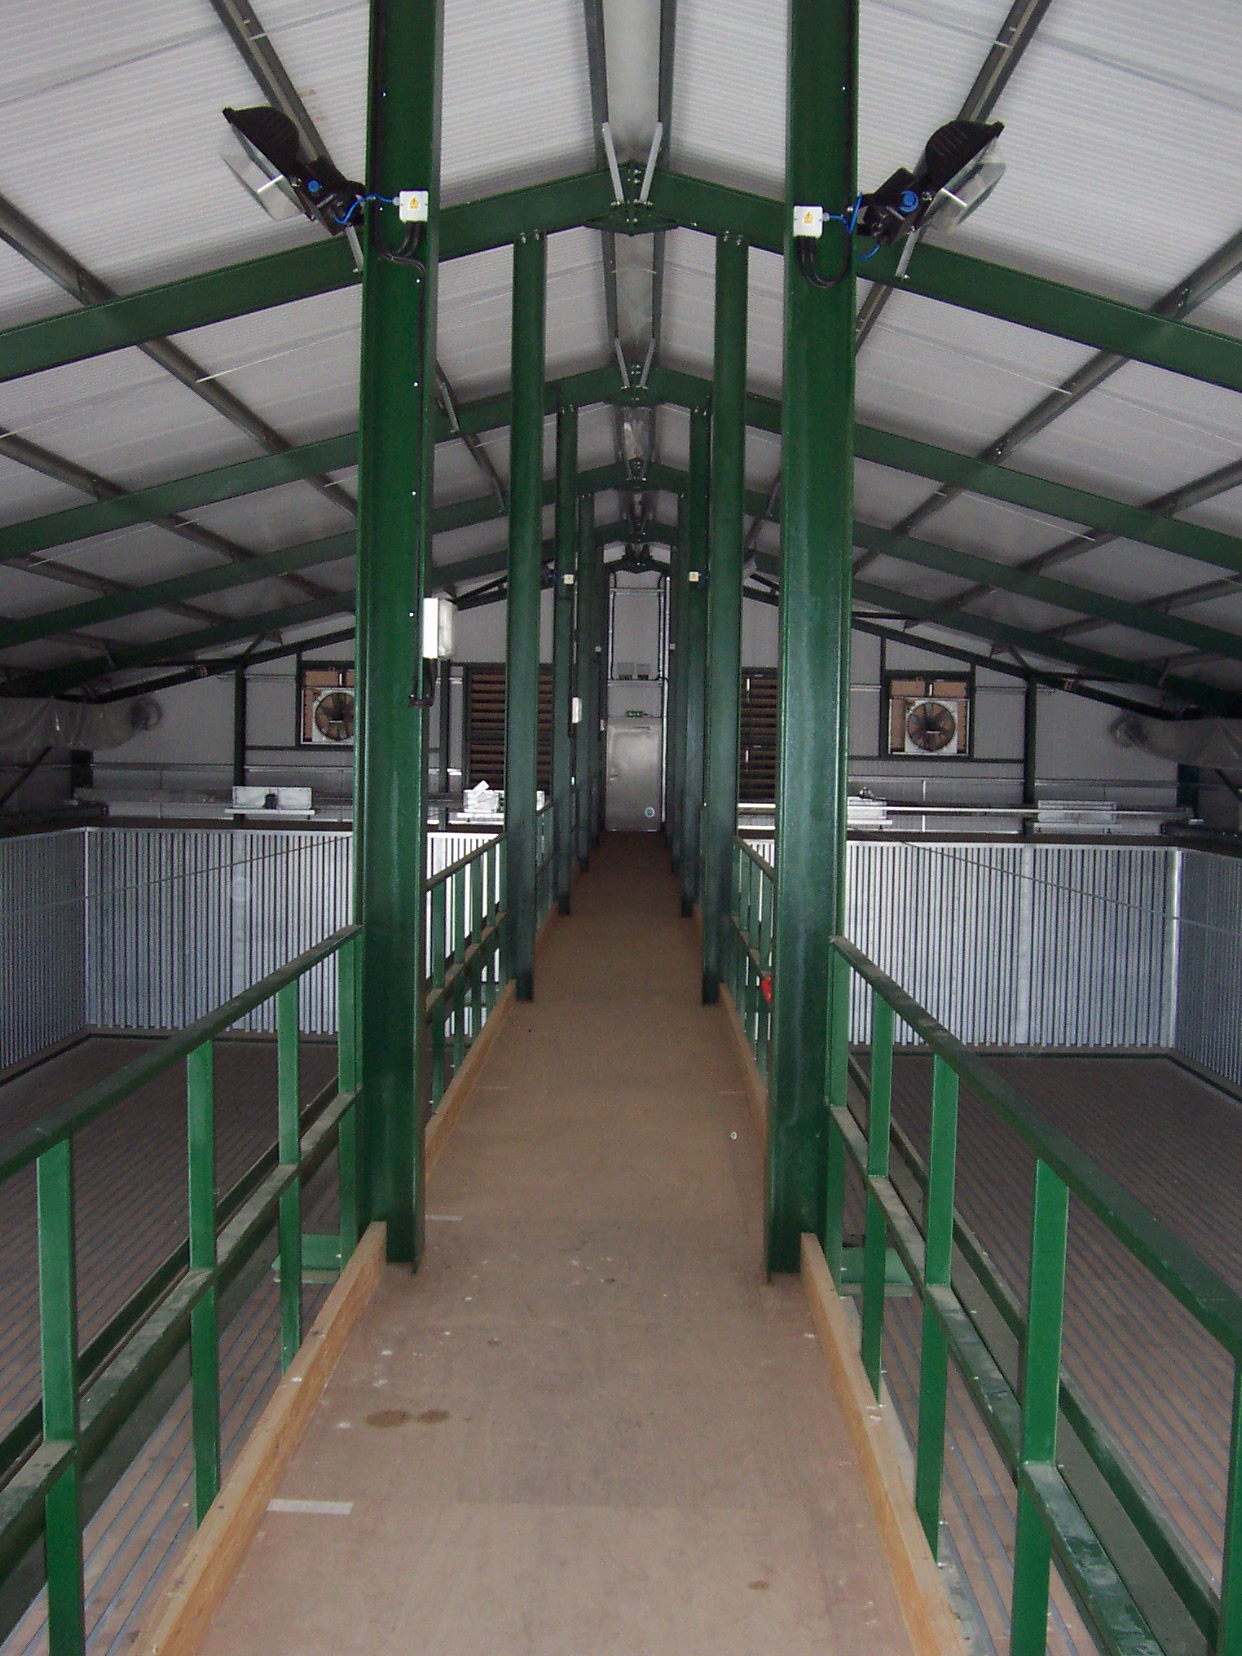 Gantry above onioin store